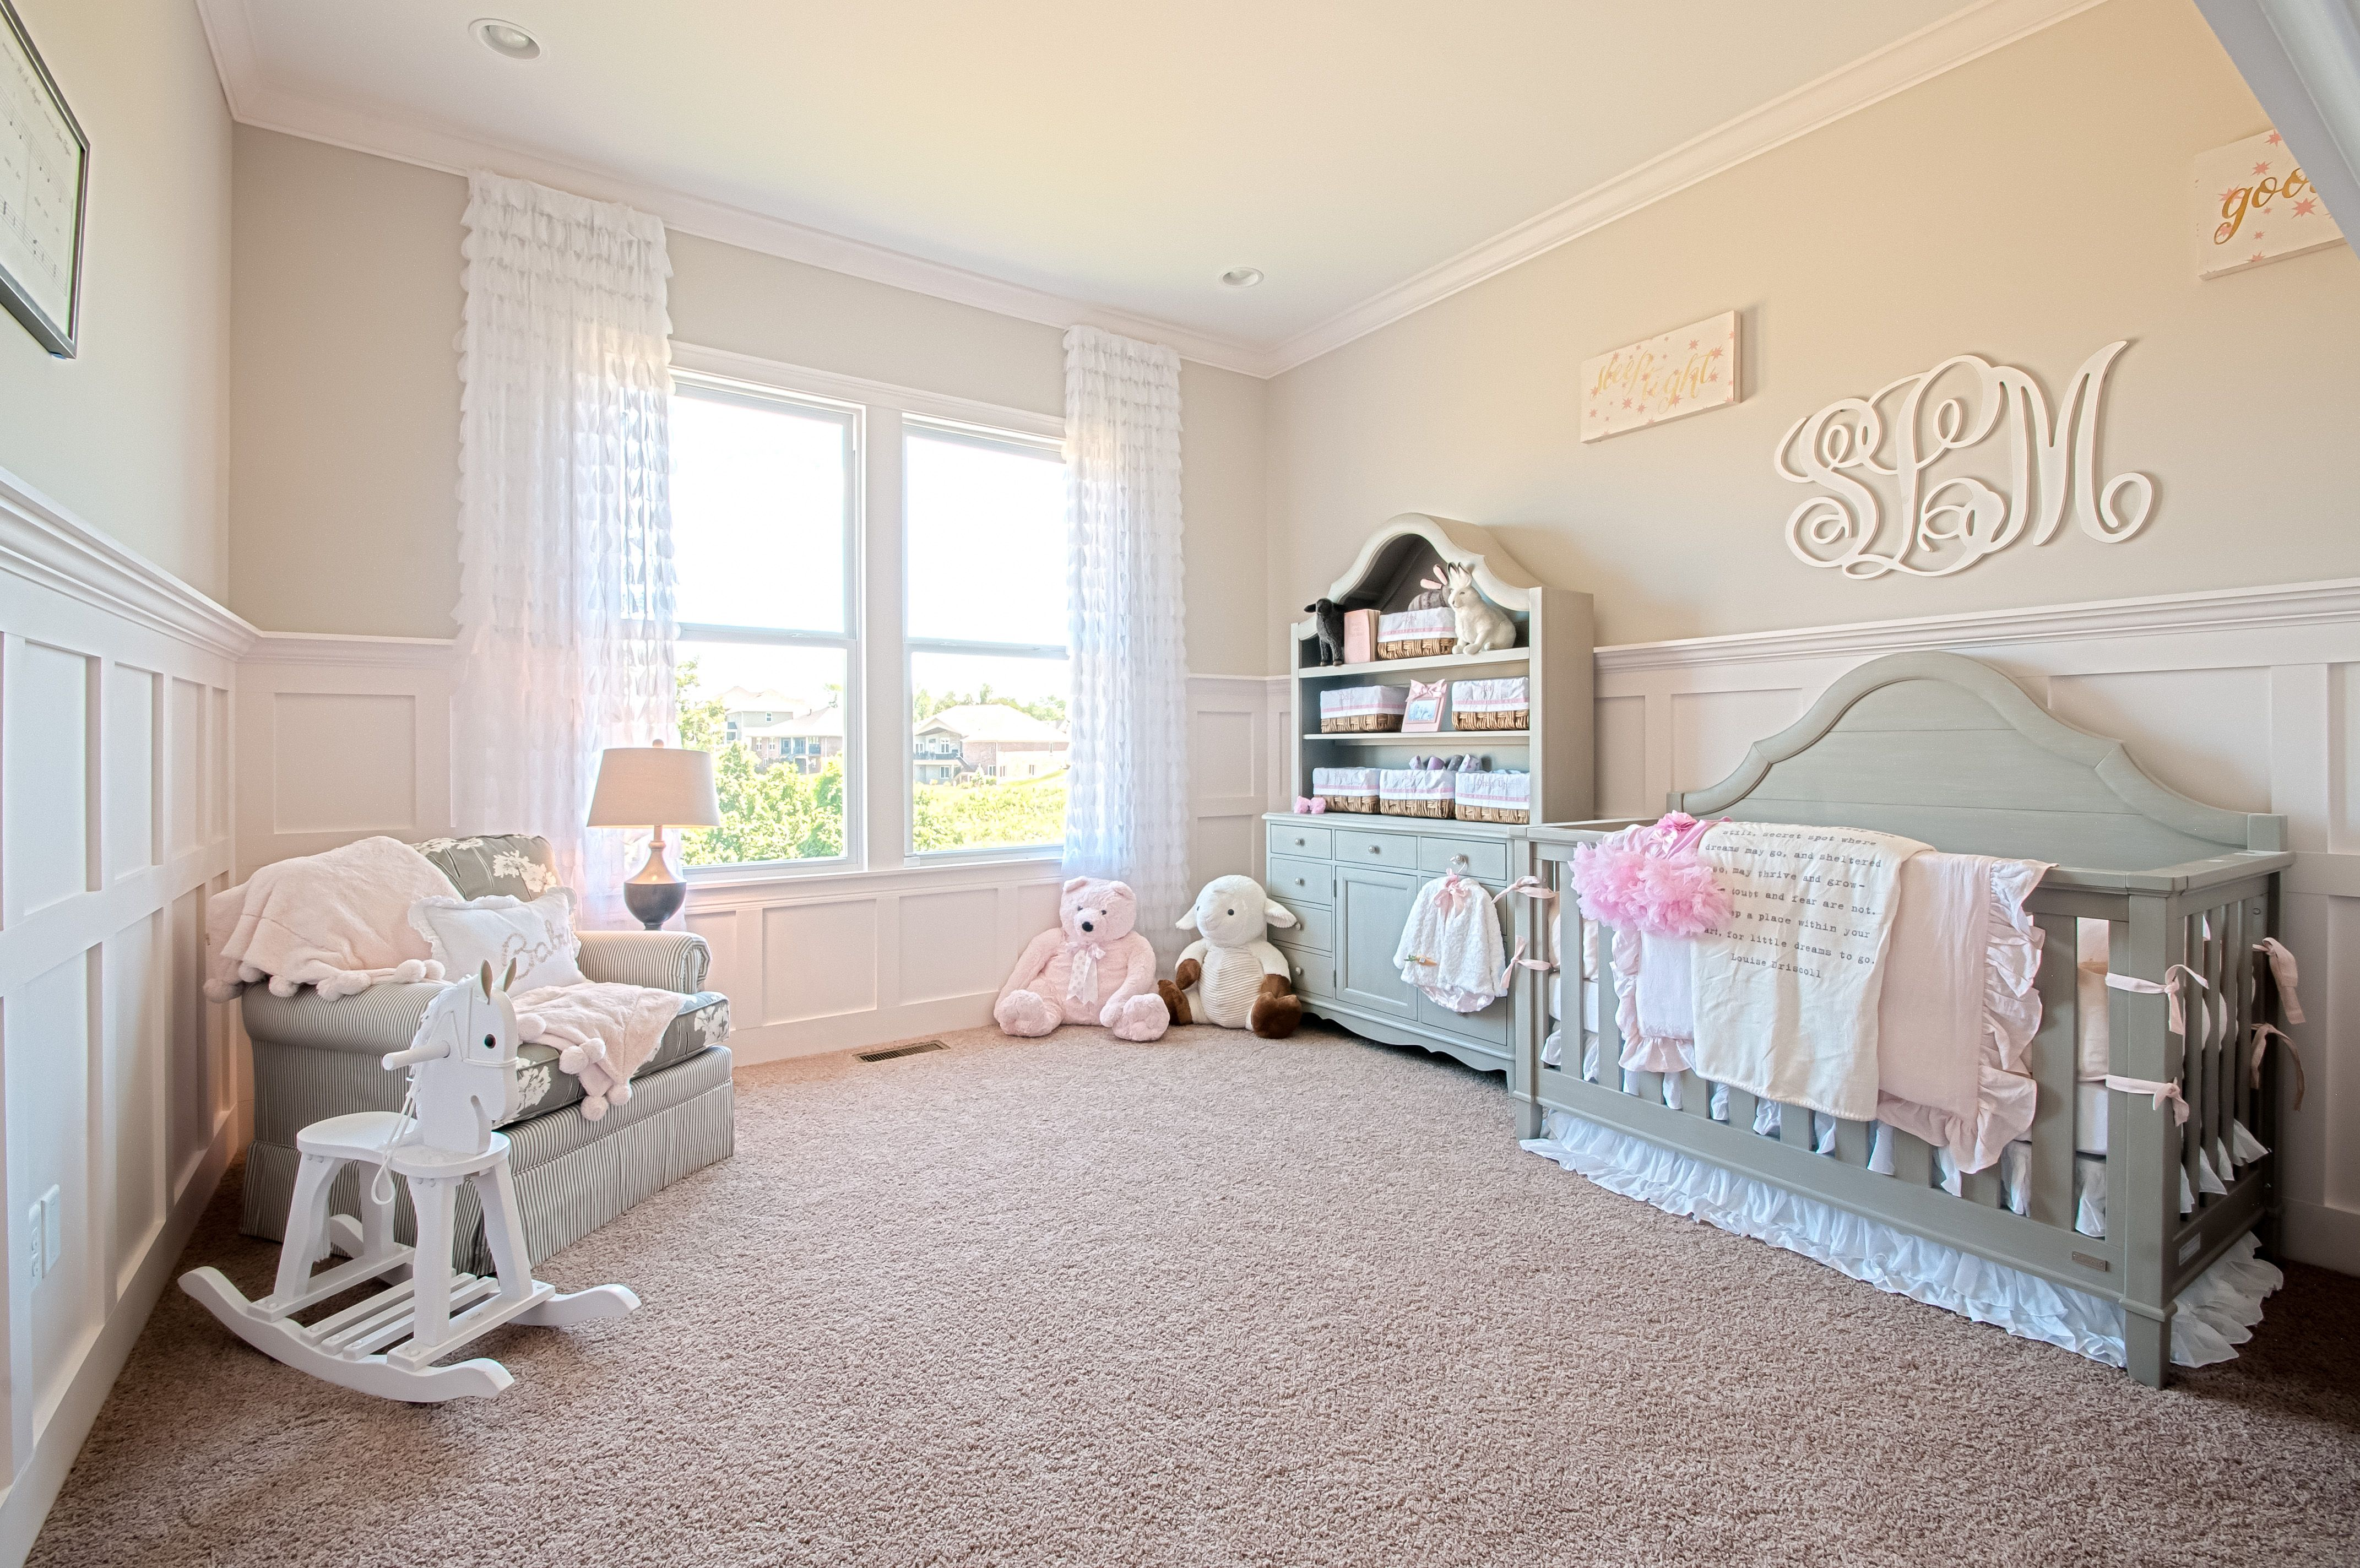 Bedroom featured in the Rookwood By Fischer Homes  in Indianapolis, IN